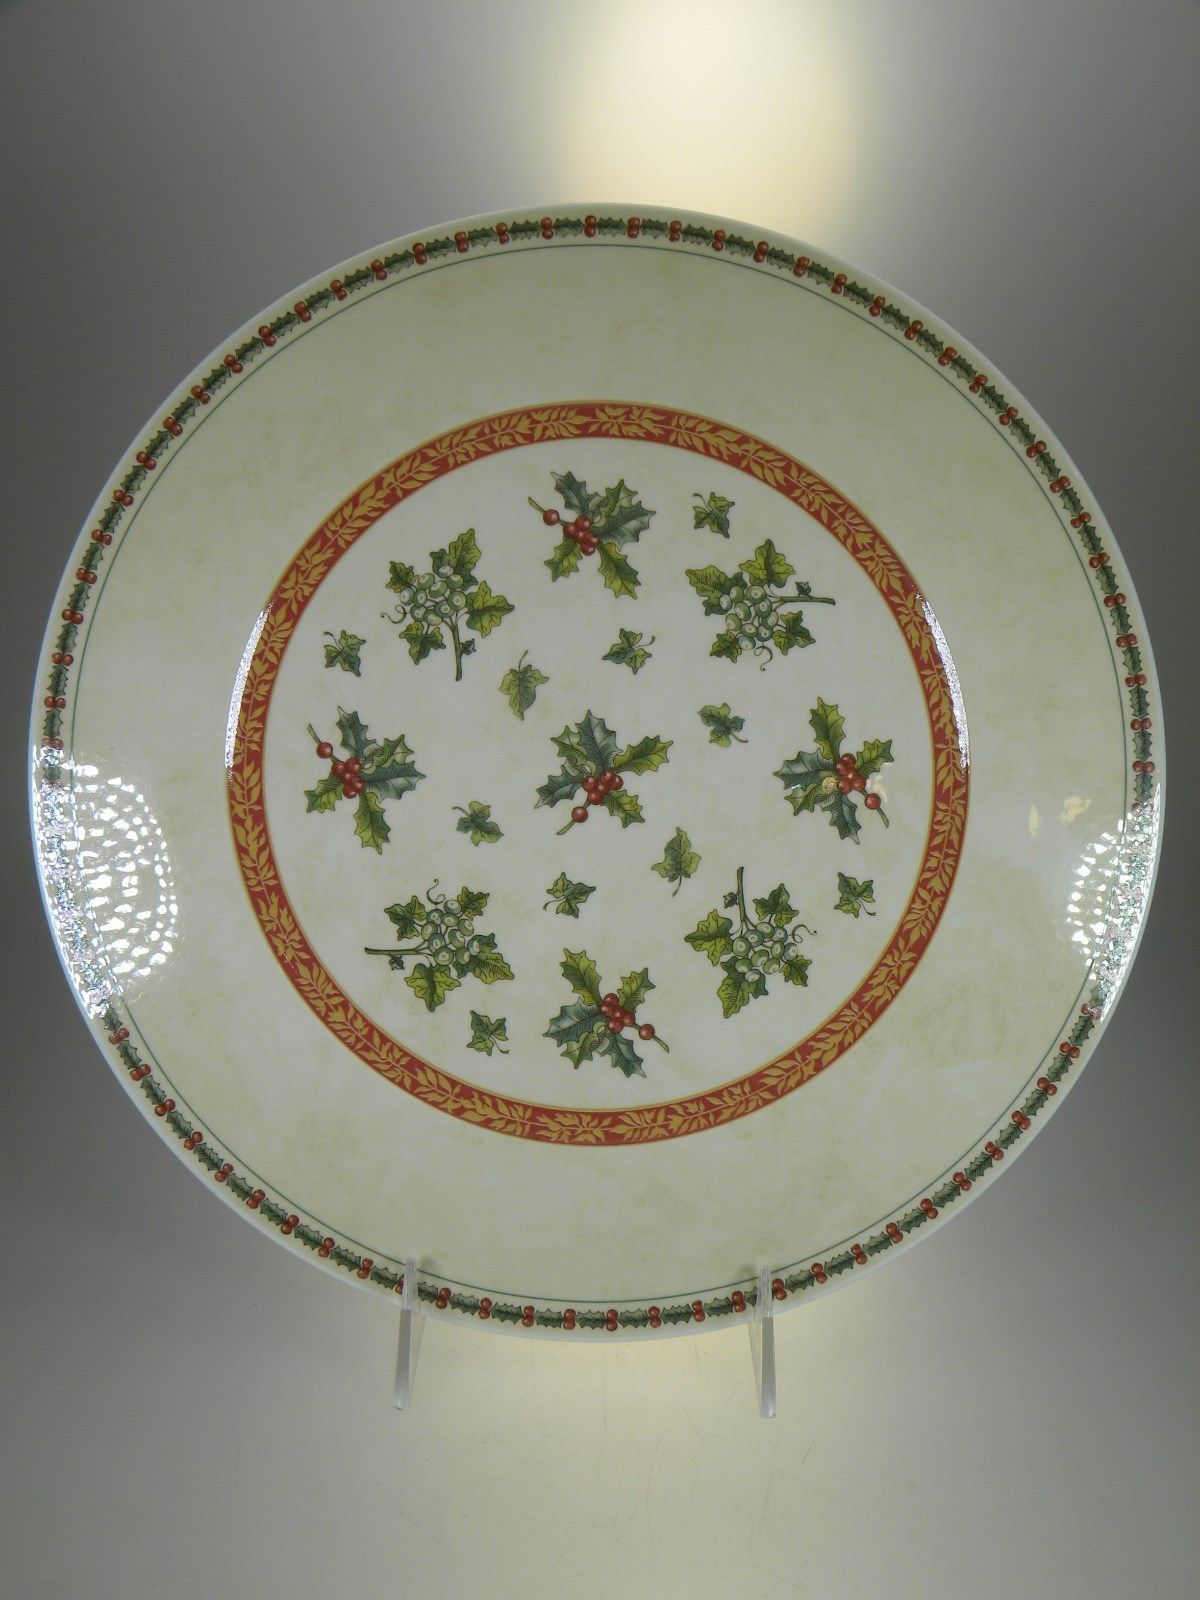 Primary image for Villeroy & Boch Festive Memories Topiary Round Platter or Charger 12""